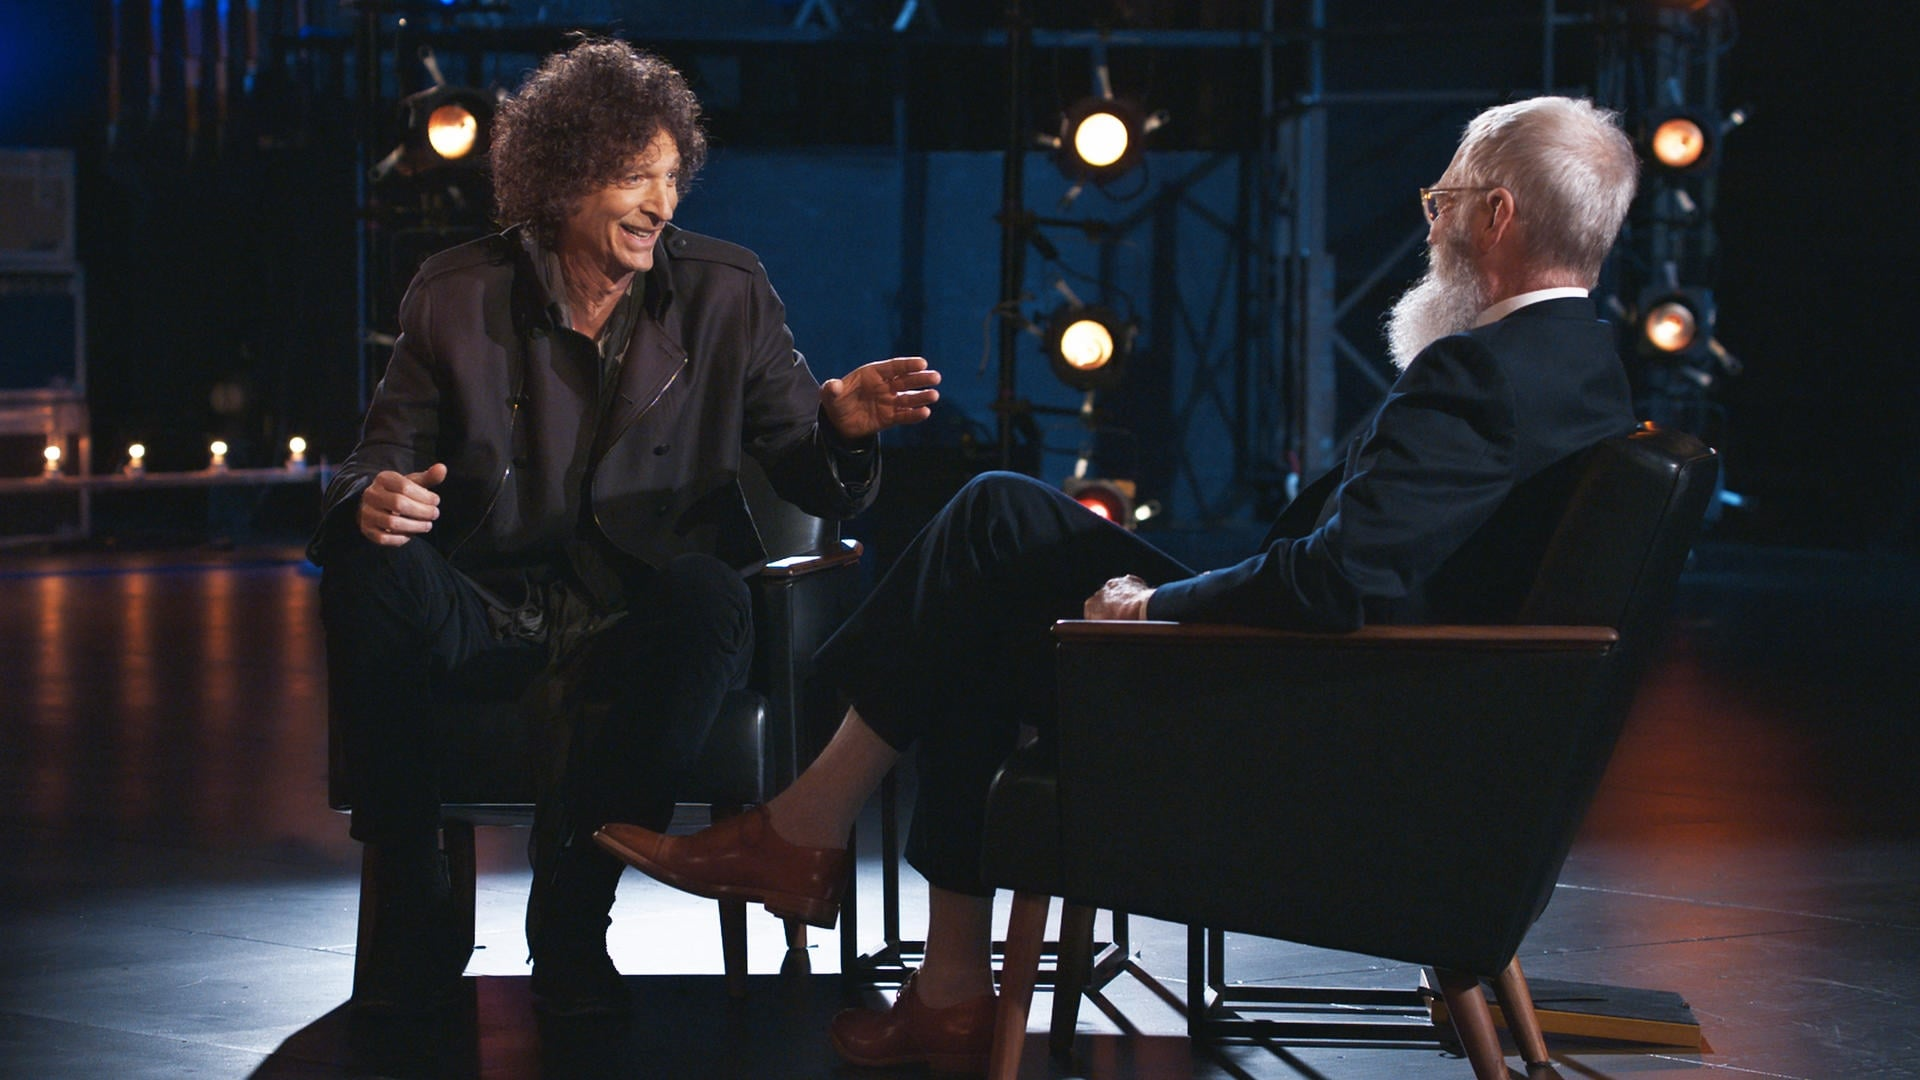 My Next Guest Needs No Introduction with David Letterman • S01E06